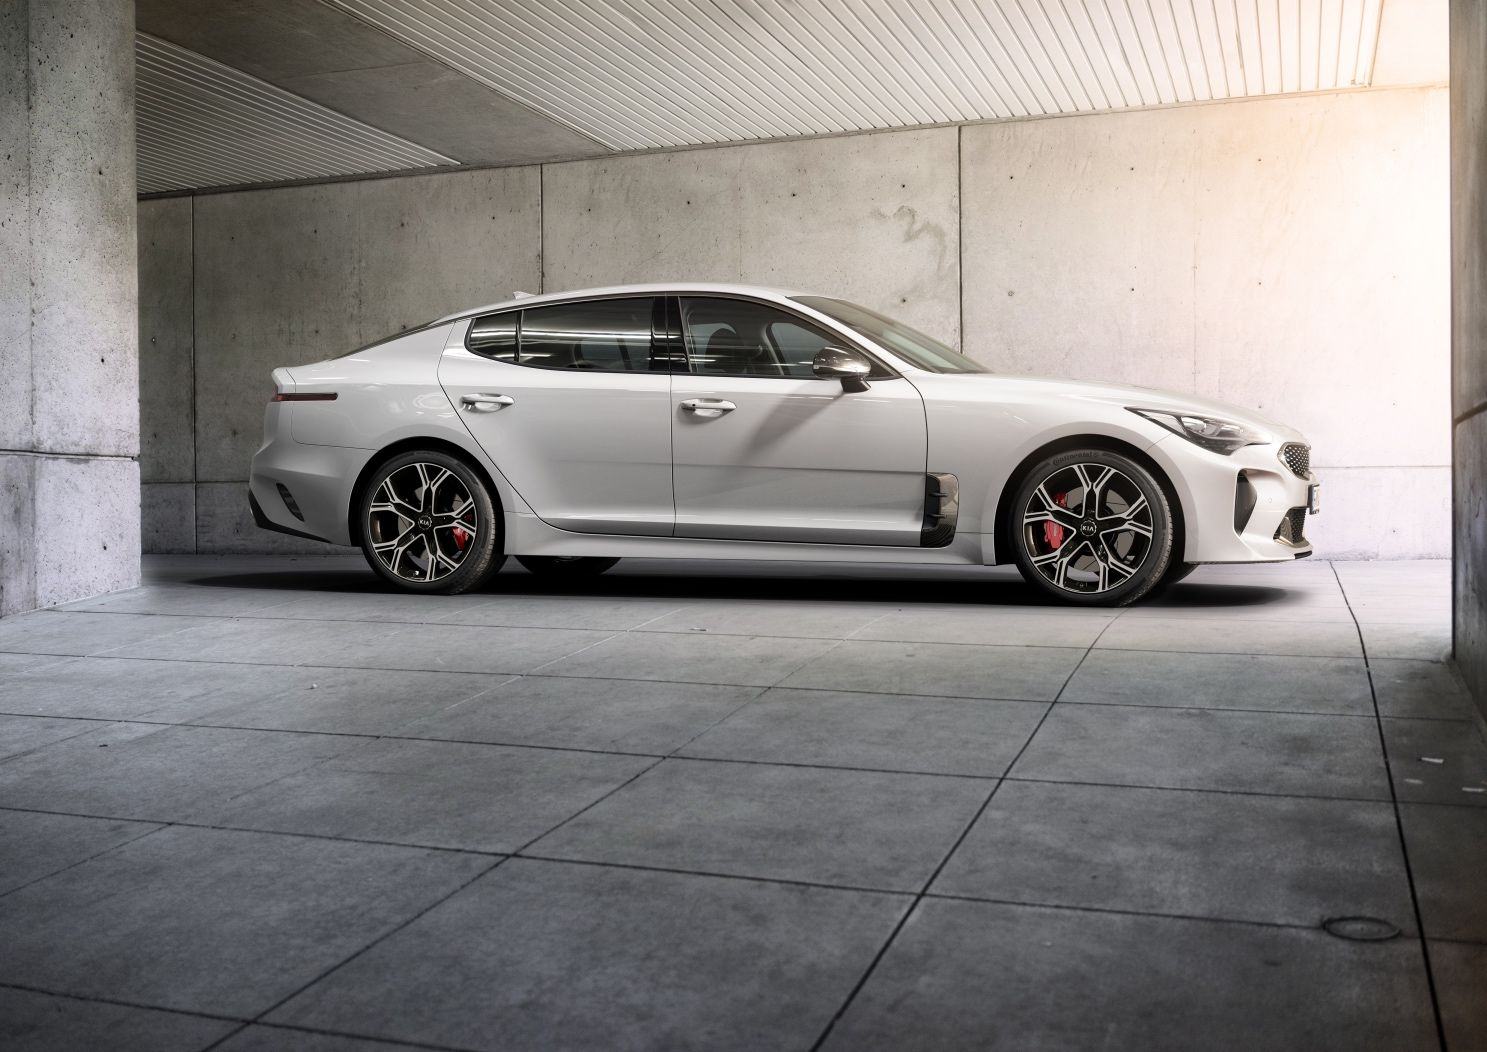 the kia stinger had just such a history before getting the green light for production as a 2018 model slated to go on sale next fall